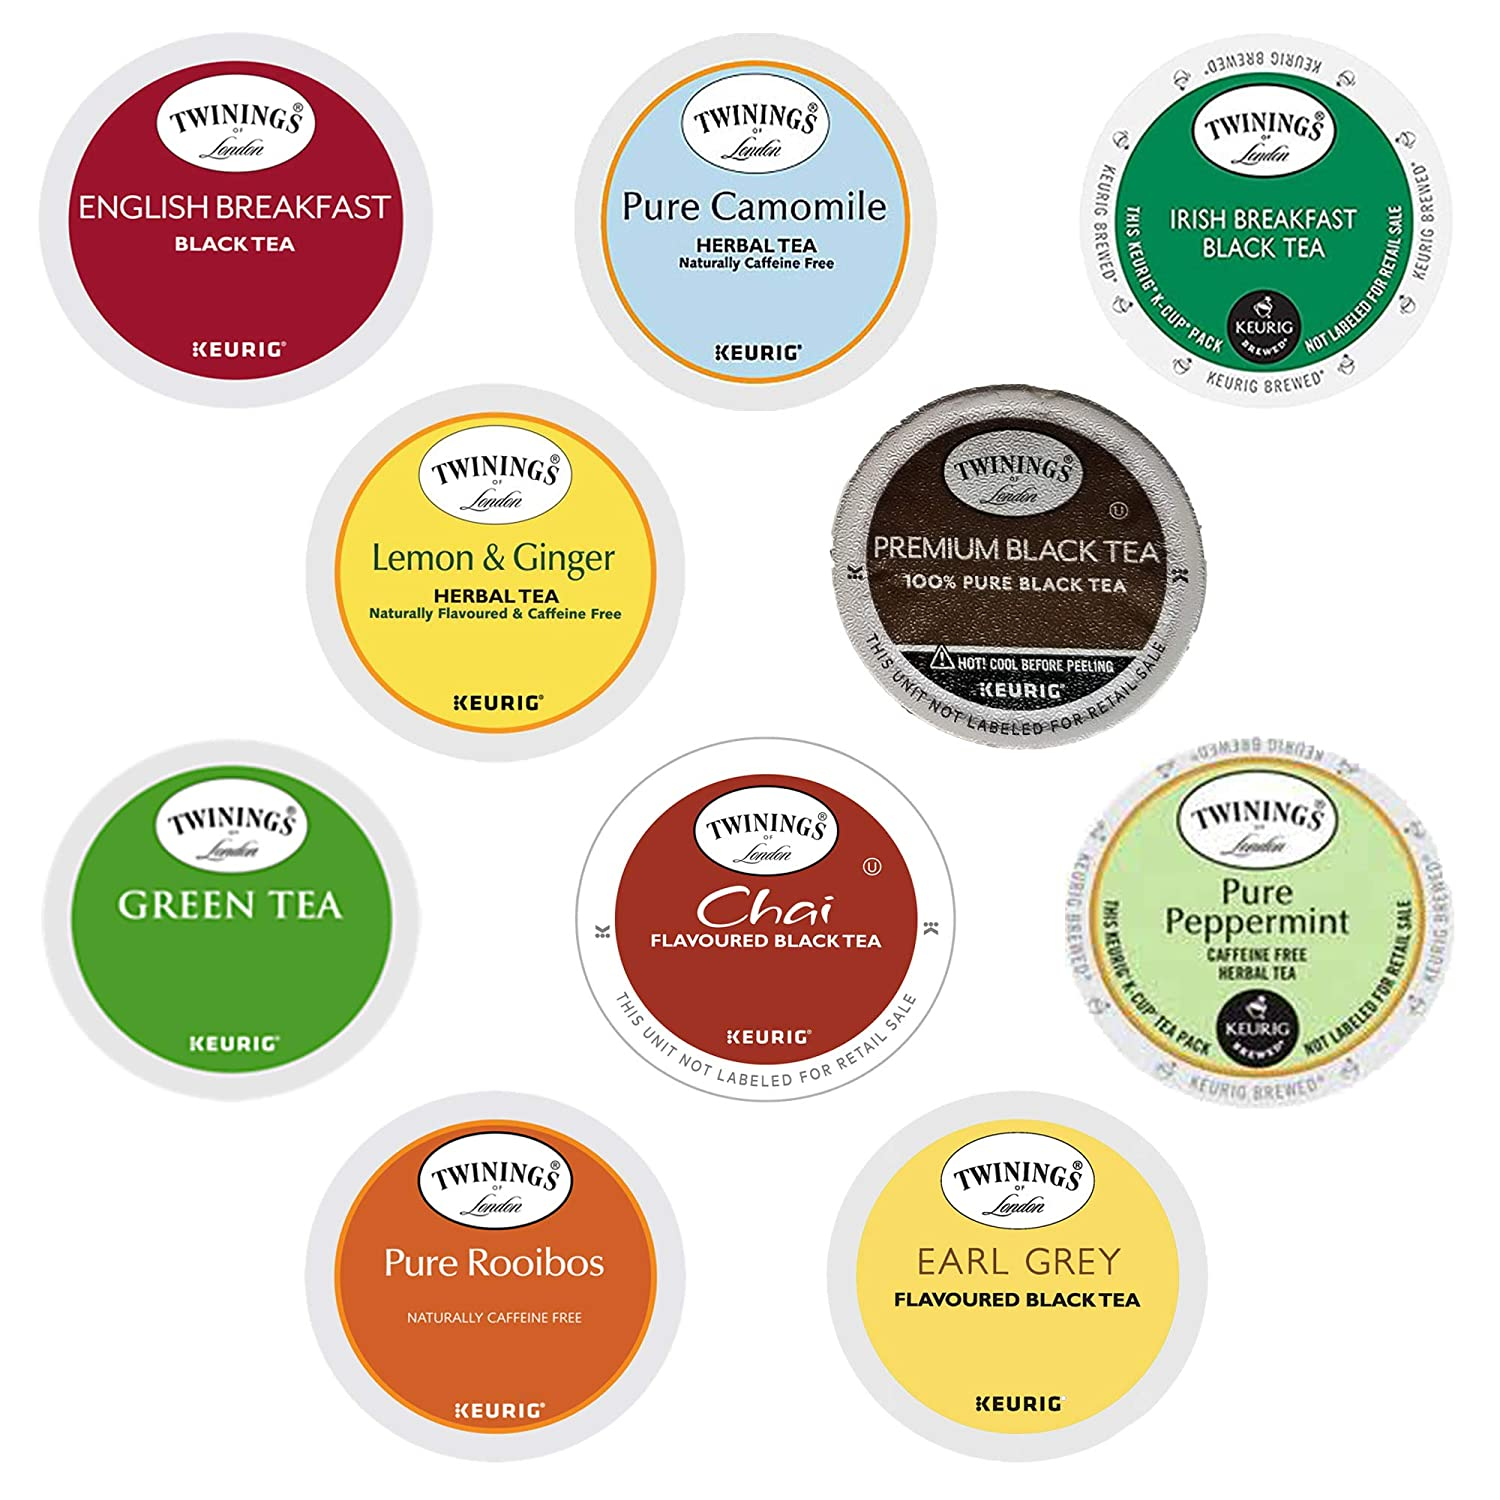 TWININGS K CUPS Tea Sampler Box - 10 Flavors ( 30 COUNT ) Variety Sampler Pack for Keurig K-Cup Brewers - Twinings English, Black, Green, Chai, Herbal Tea and more - Gift for Tea Lovers